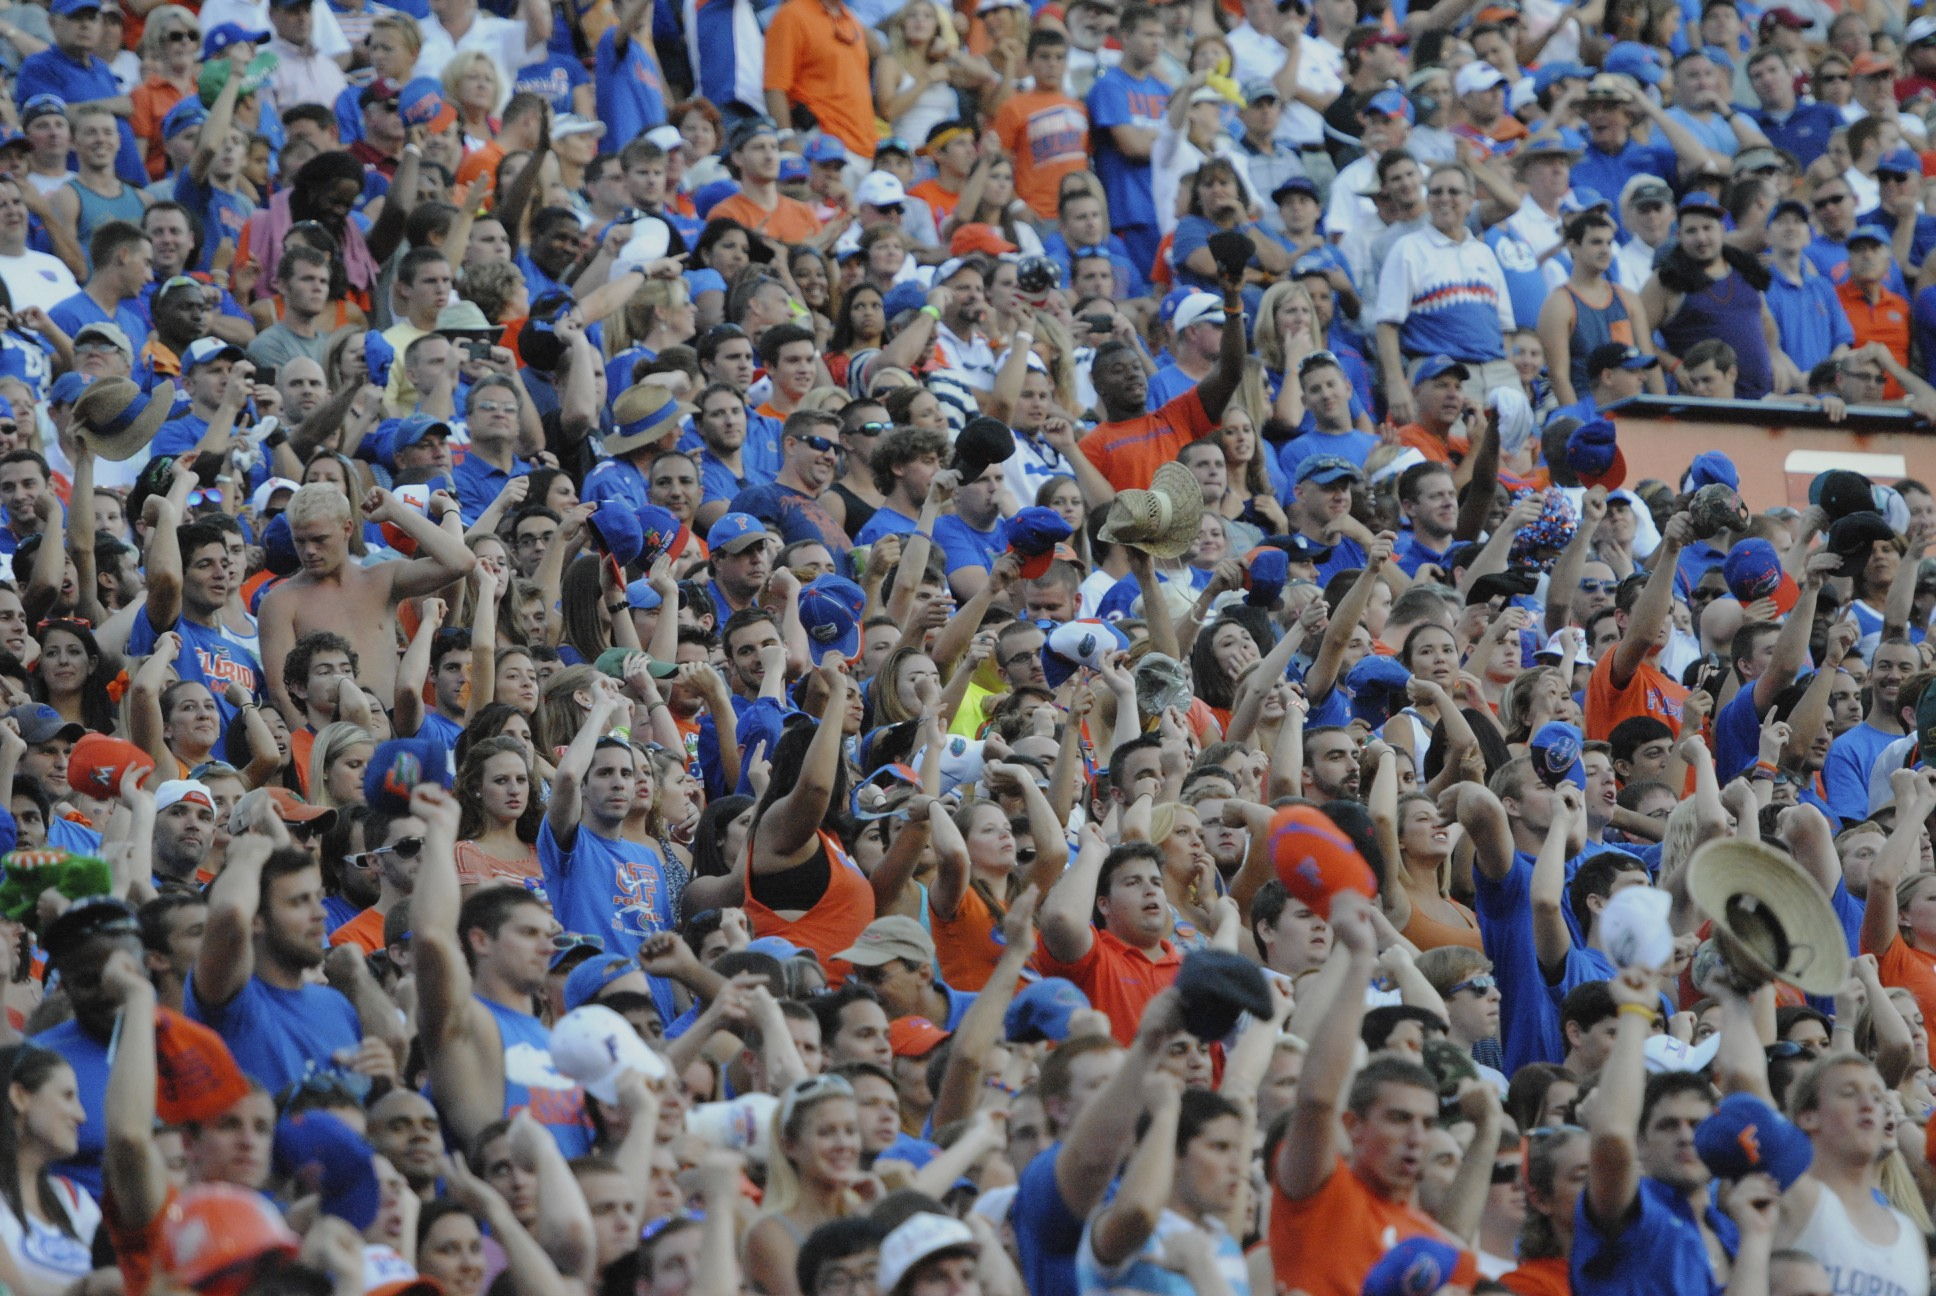 Florida fans filled the Swamp to watch the Gators defeat the Gamecoack 44-11 on Saturday afternoon.